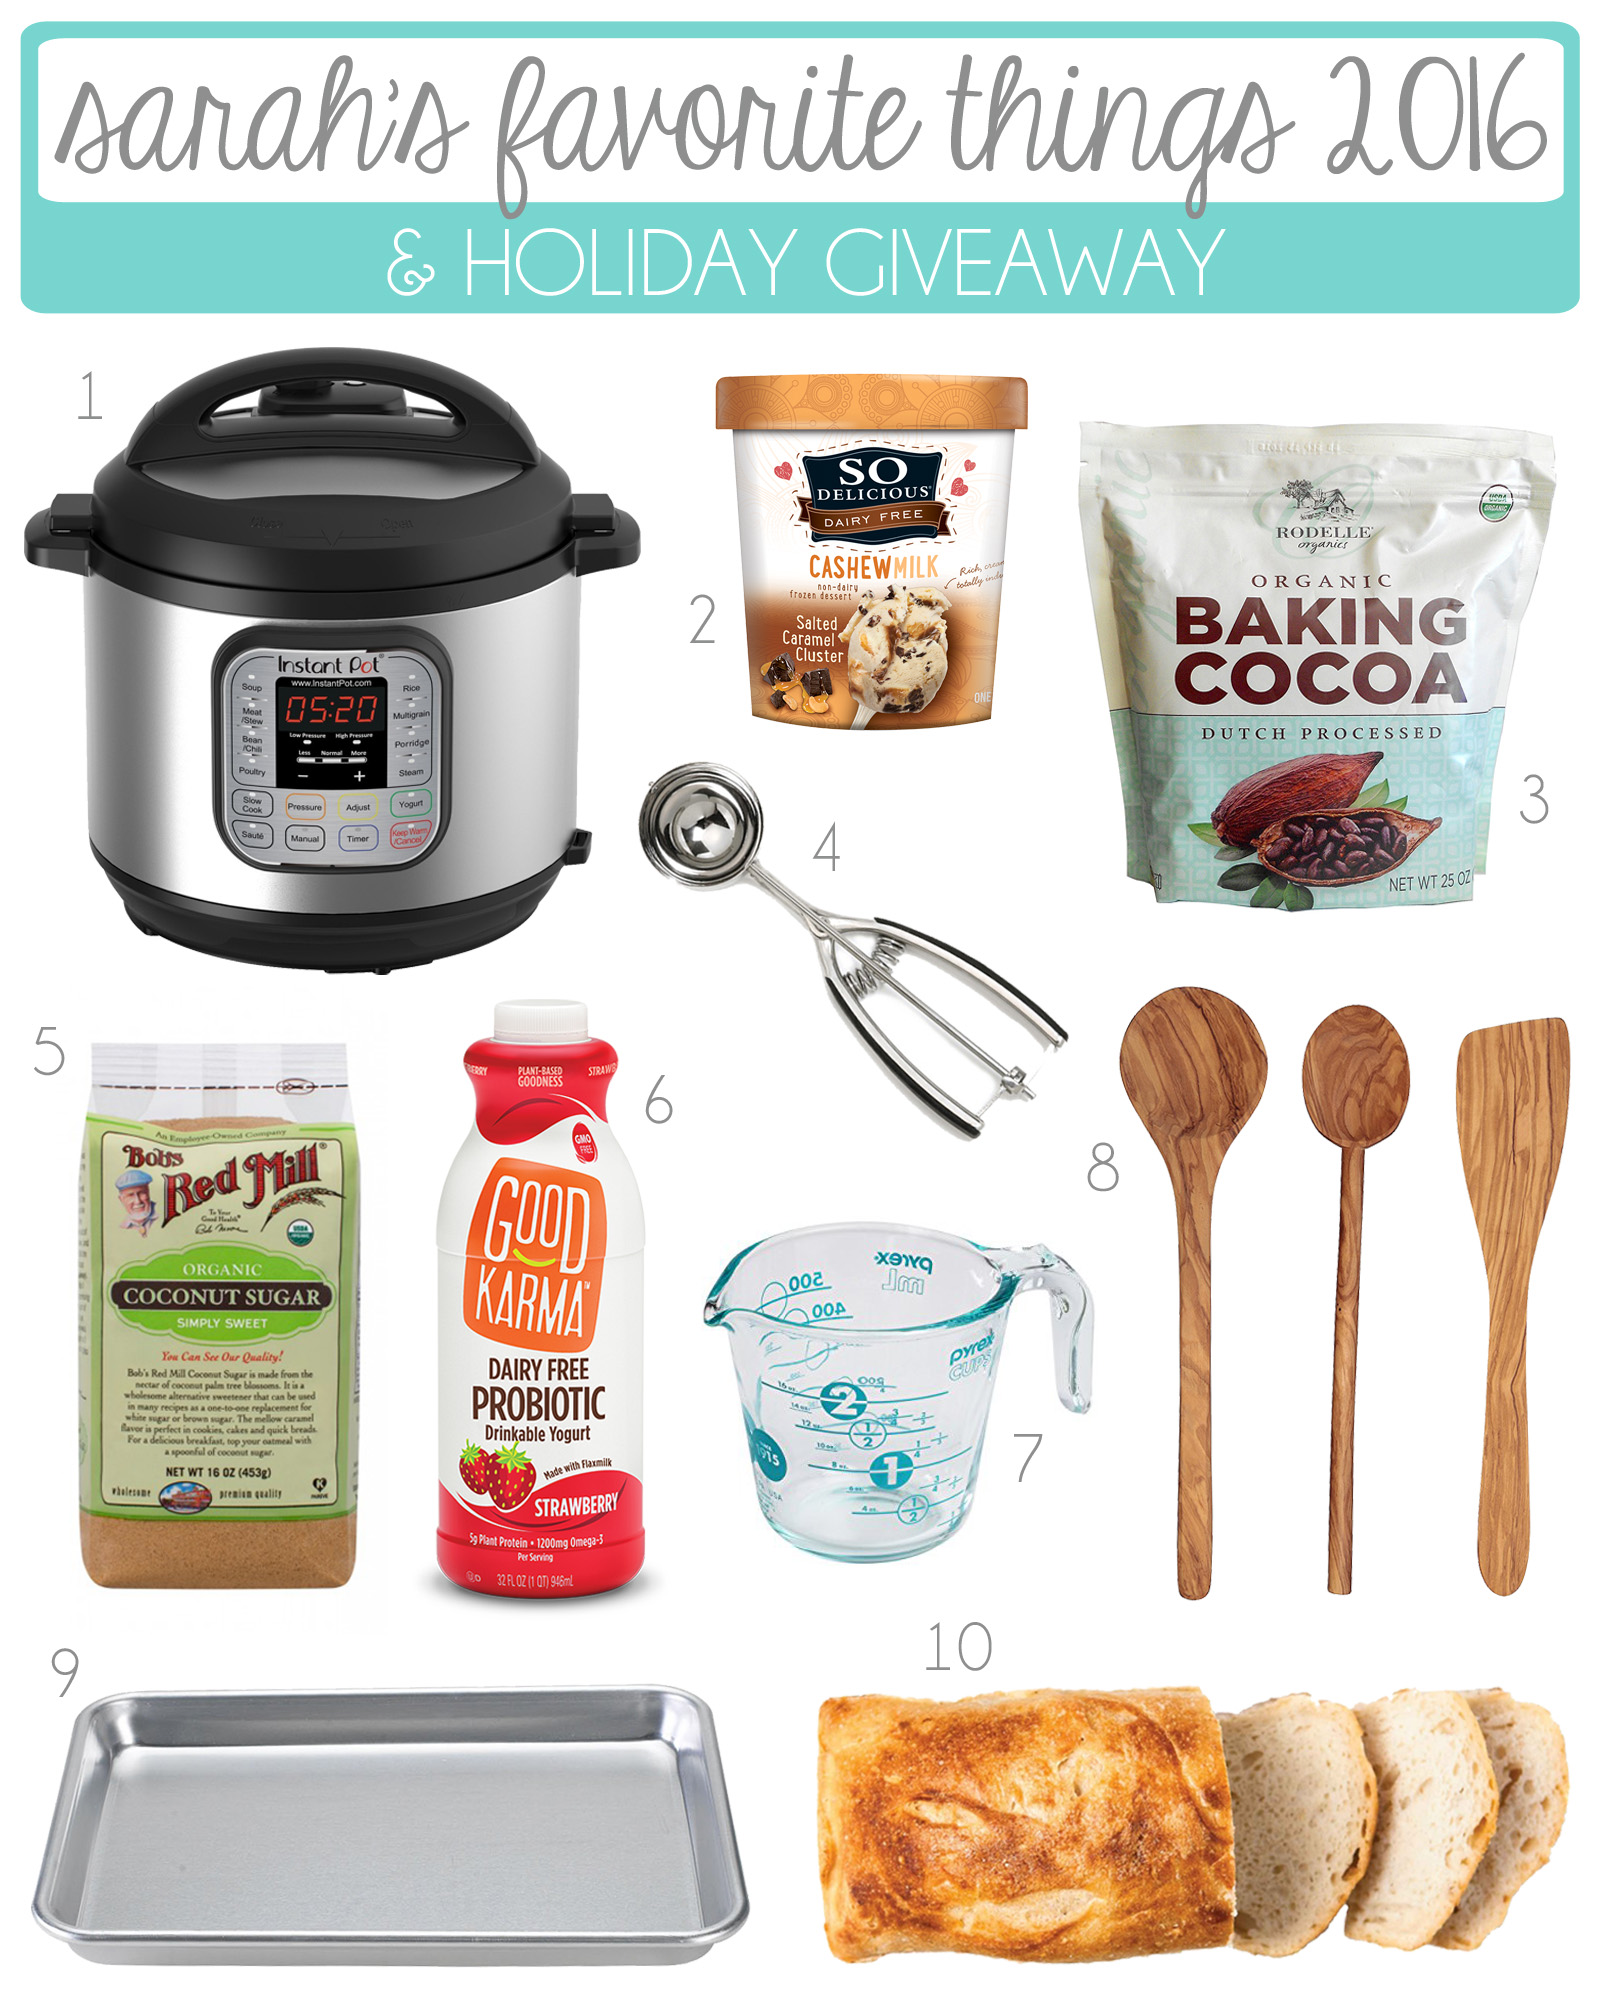 Sarah's Favorite Things 2016. From kitchen gadgets to baking ingredients, these are my must-haves this year!